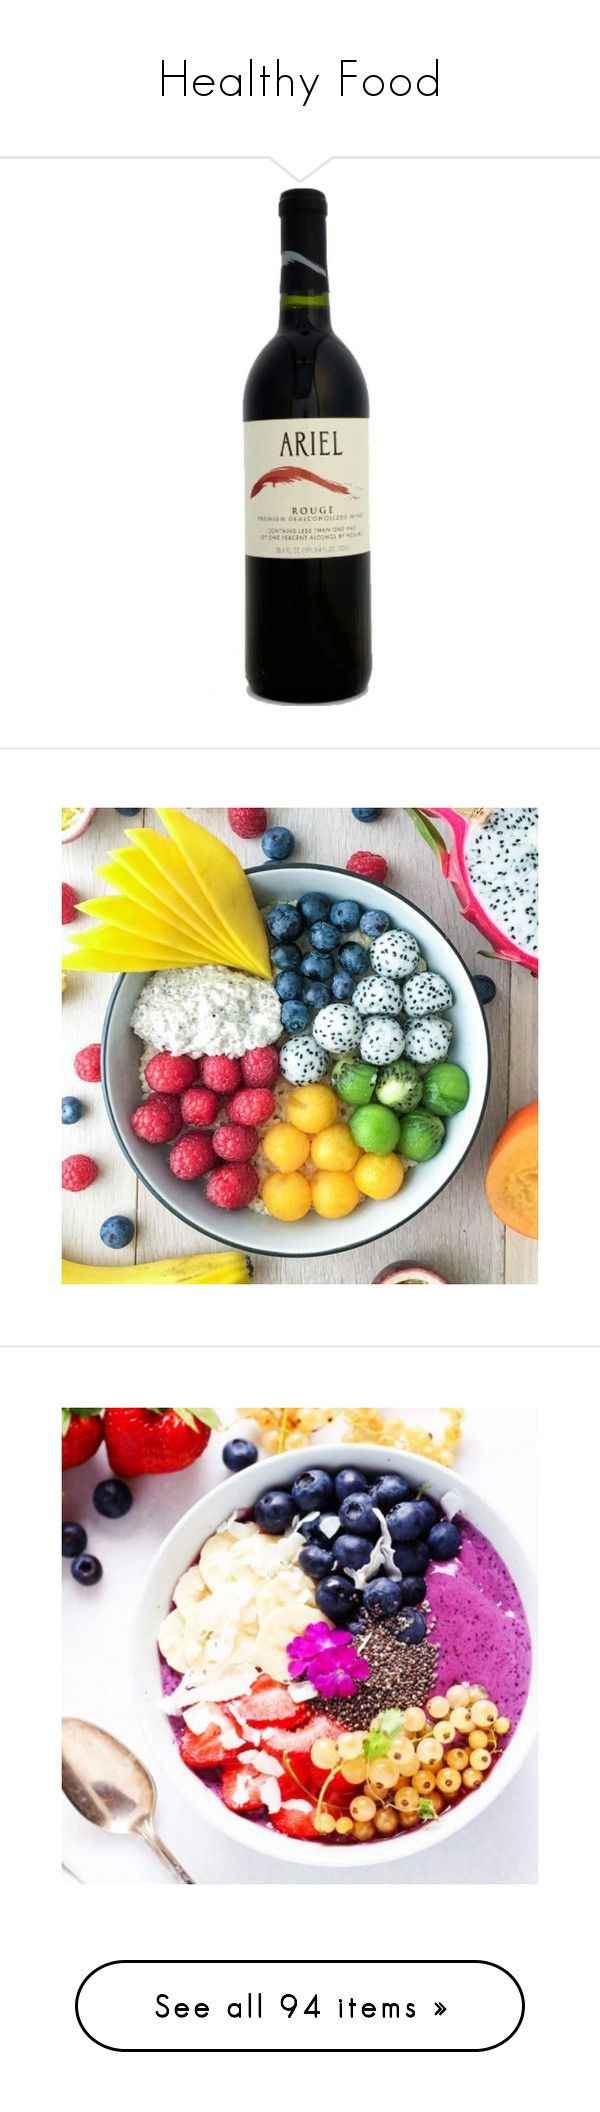 """Healthy Food"" by allison-syko ❤ liked on Polyvore featuring food, photos, home, kitchen & dining, serveware, fillers, food and drink, accessories, lsa international and serving bowl"